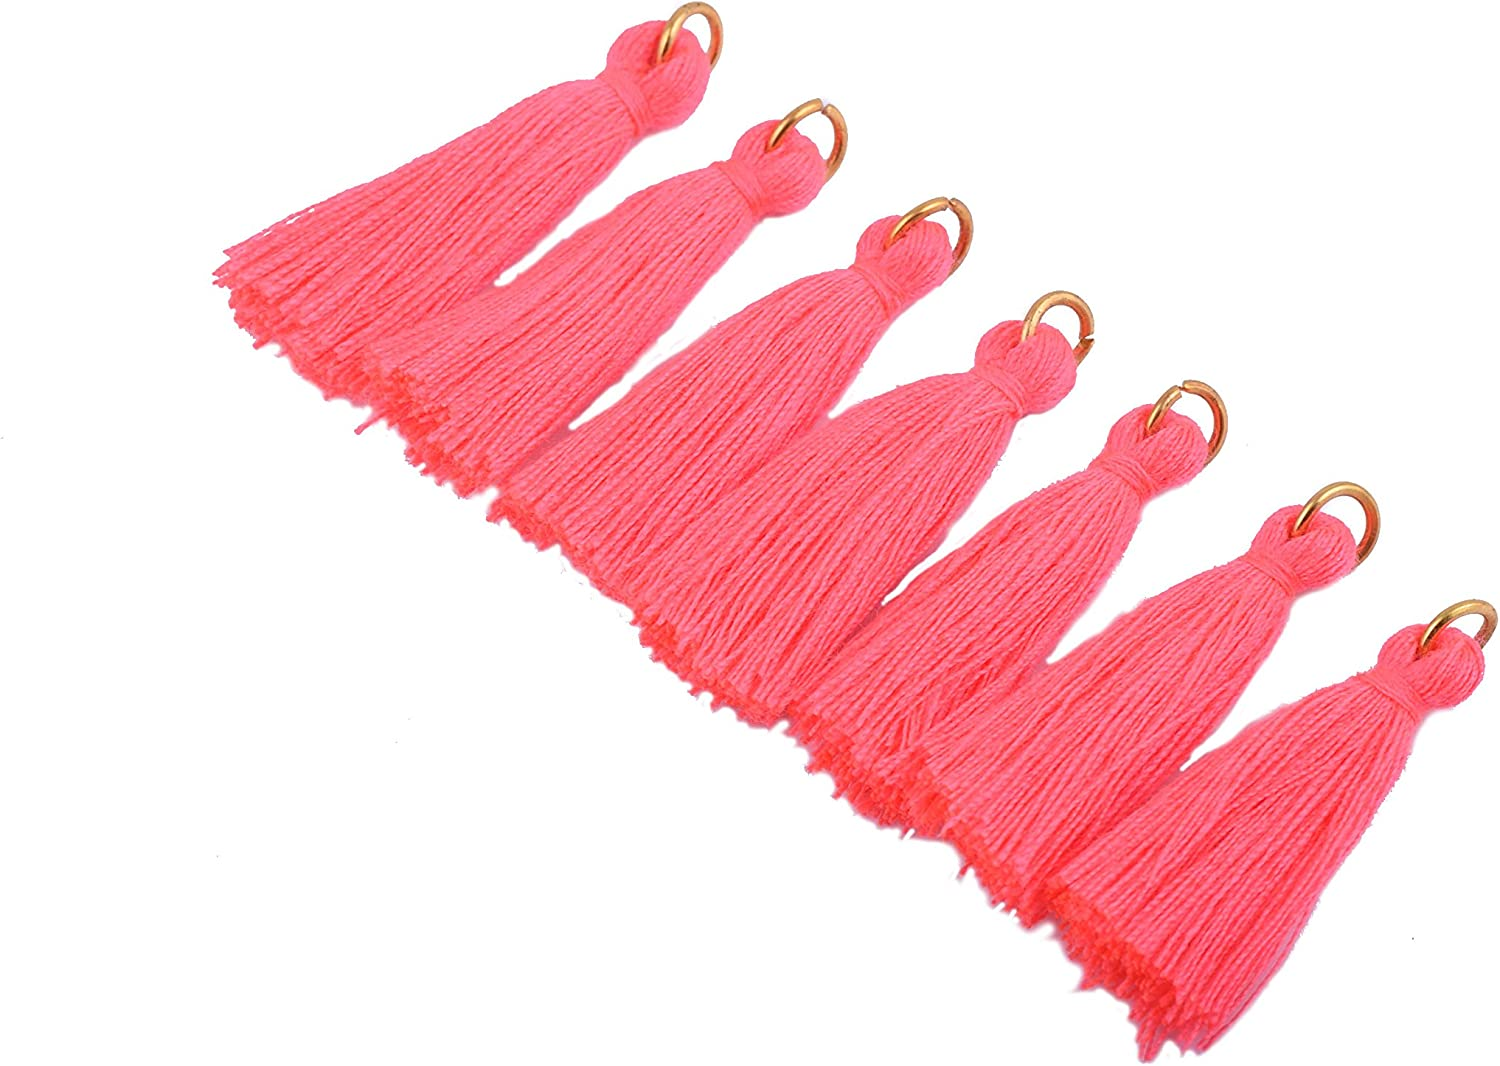 3.5cm Plum Soft Handmade Silky Tiny Craft Tassels with Golden Jump Ring for DIY Projects KONMAY 50PCS 1.4